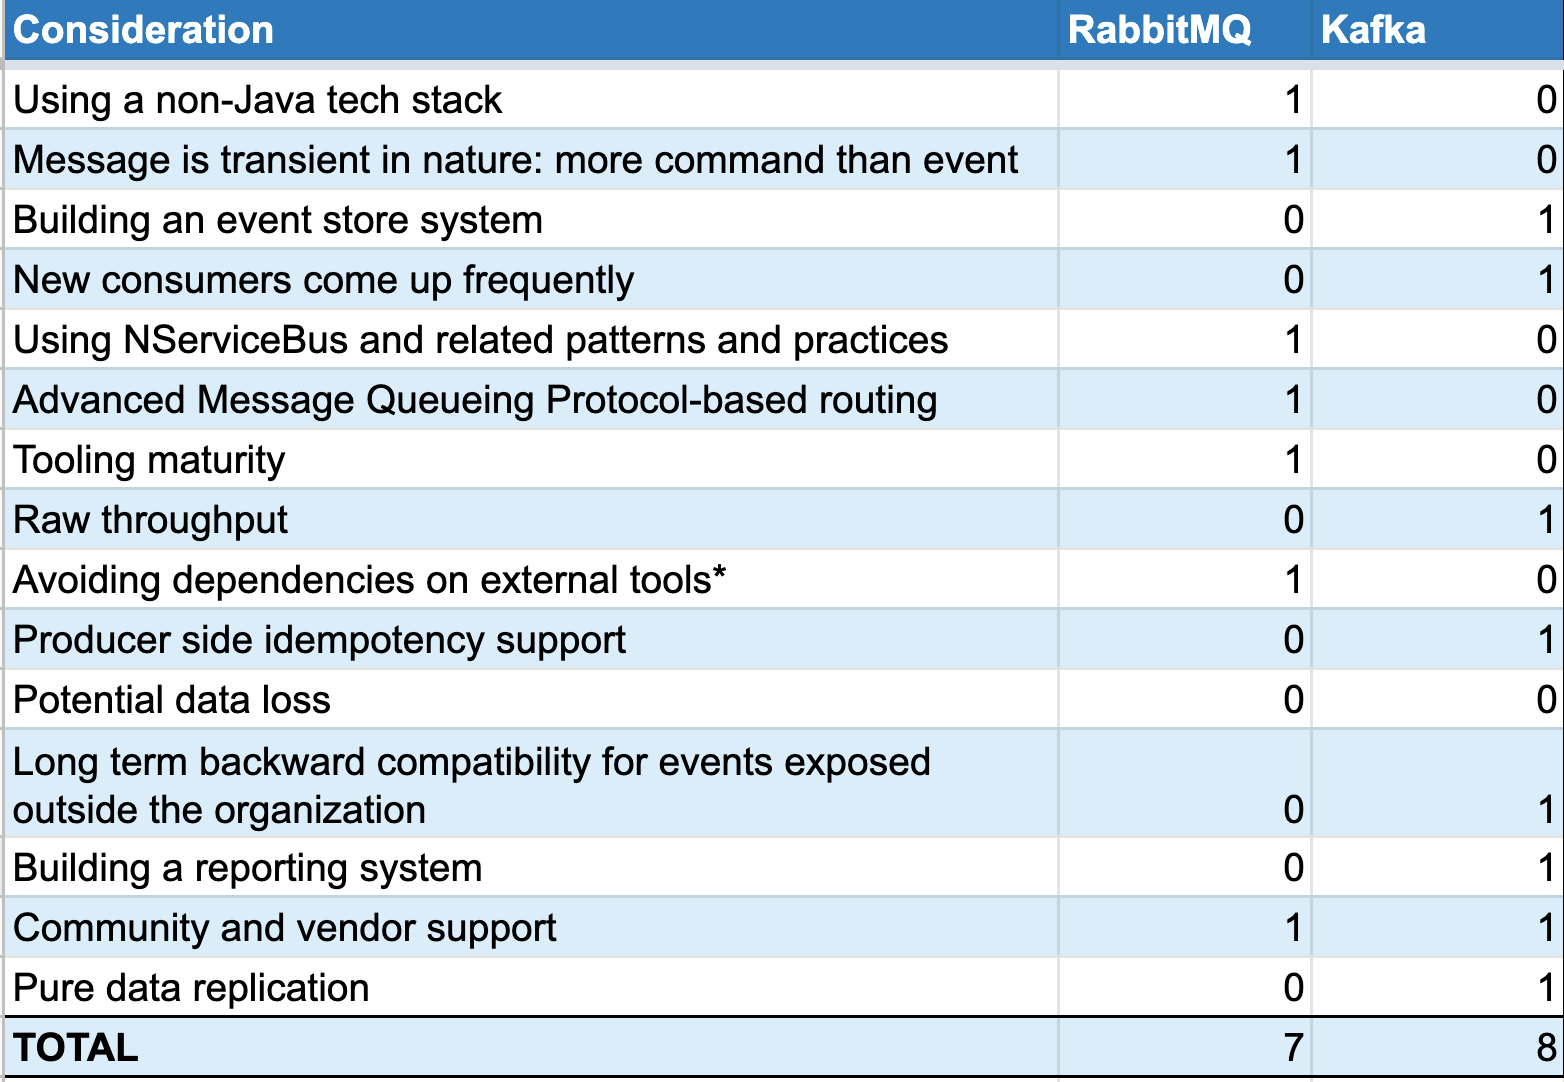 Is Kafka or RabbitMQ the right messaging tool for you?